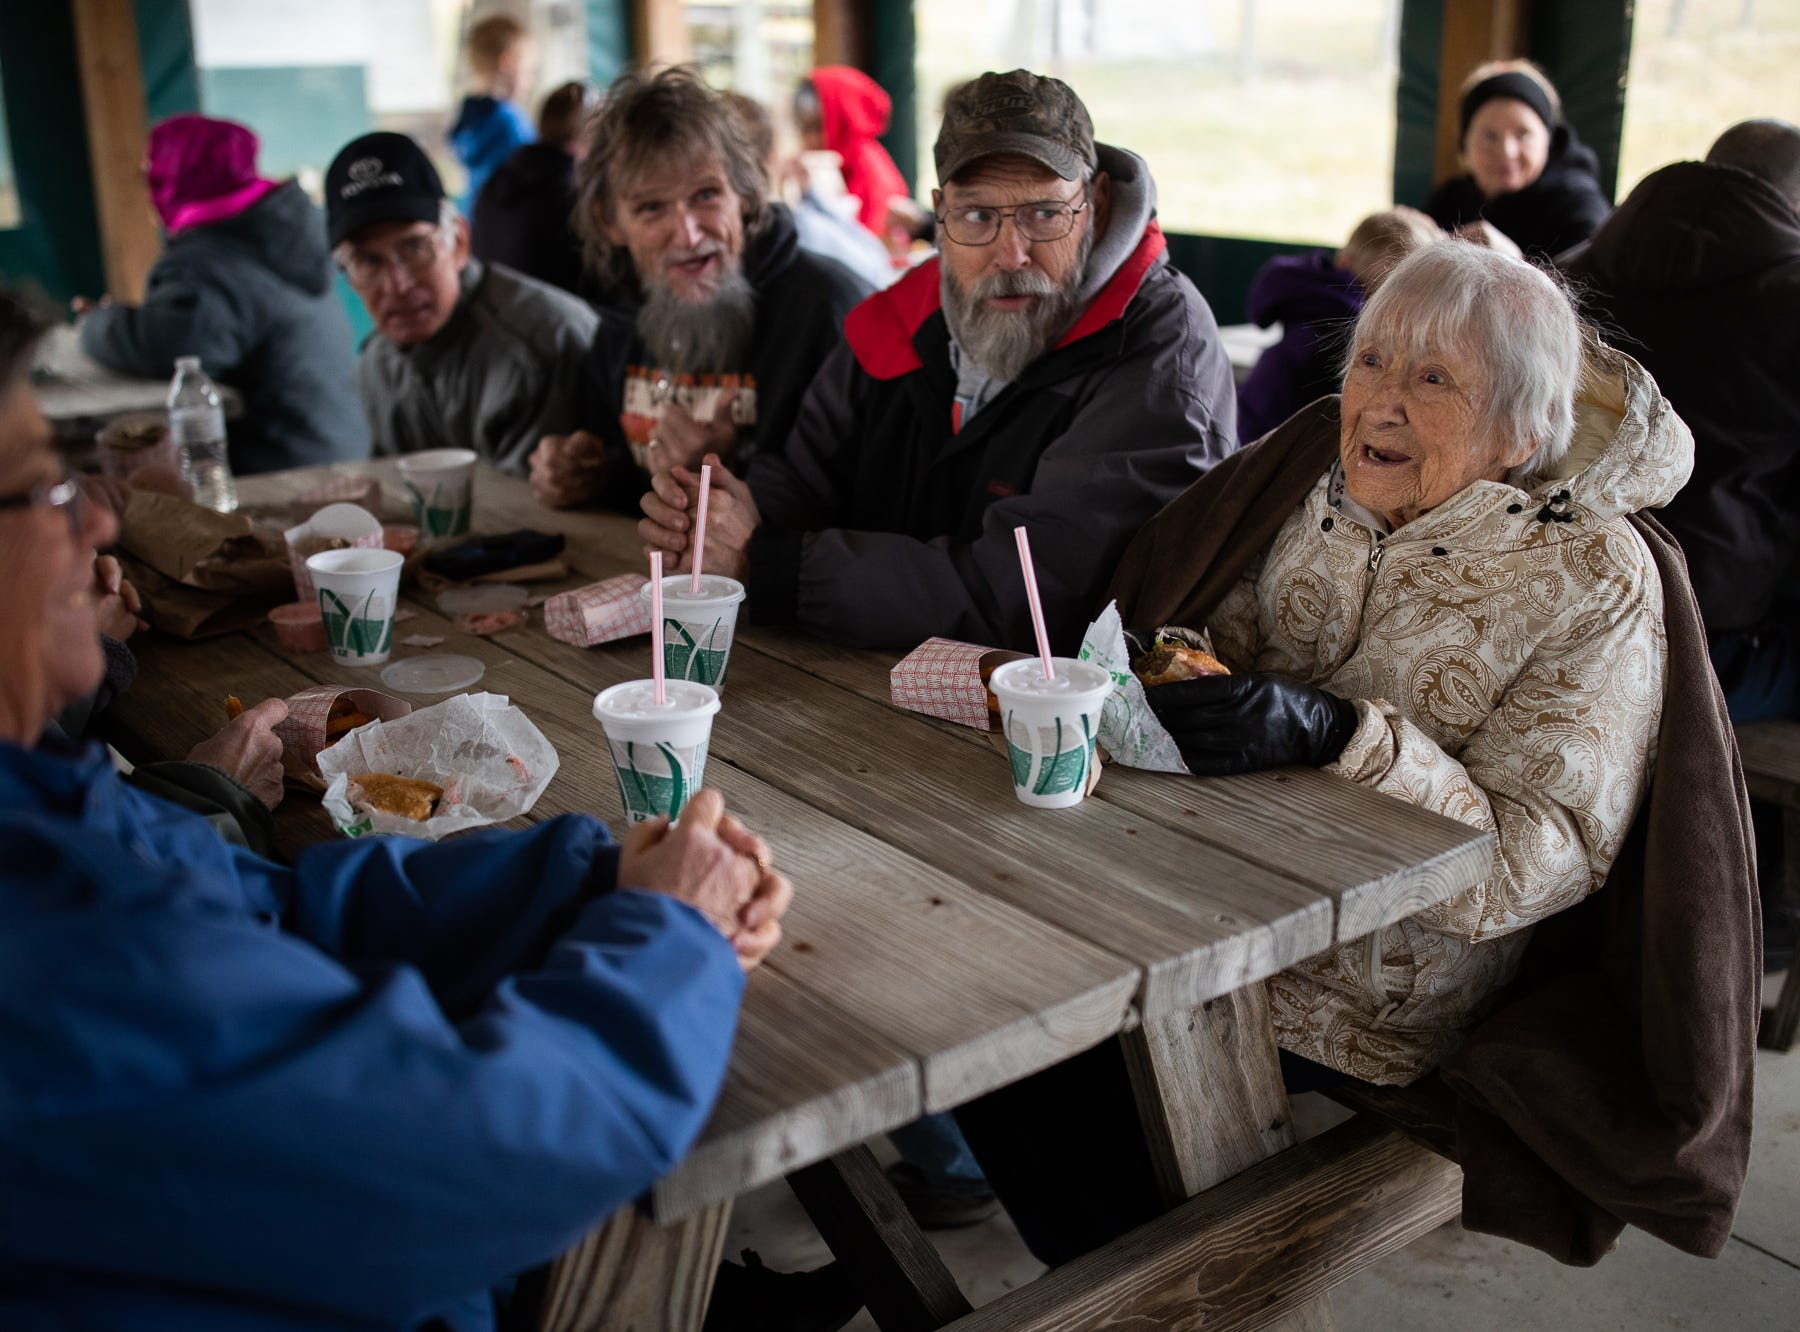 Geraldean Bain, 94, right, laughs while eating with Barb Manger, left, Sandy Yerger, out of frame, Lisa Homan, out of frame, Steve Manger, second from left, Randy Homan, third from left, and Steve Yerger, second from right, during Tropical Treat's first day of business for the 2019 season, Wednesday, March 13, 2019, in Berwick Township. The group has been coming to the opening day of the Tropical Treat for more than 40 years.